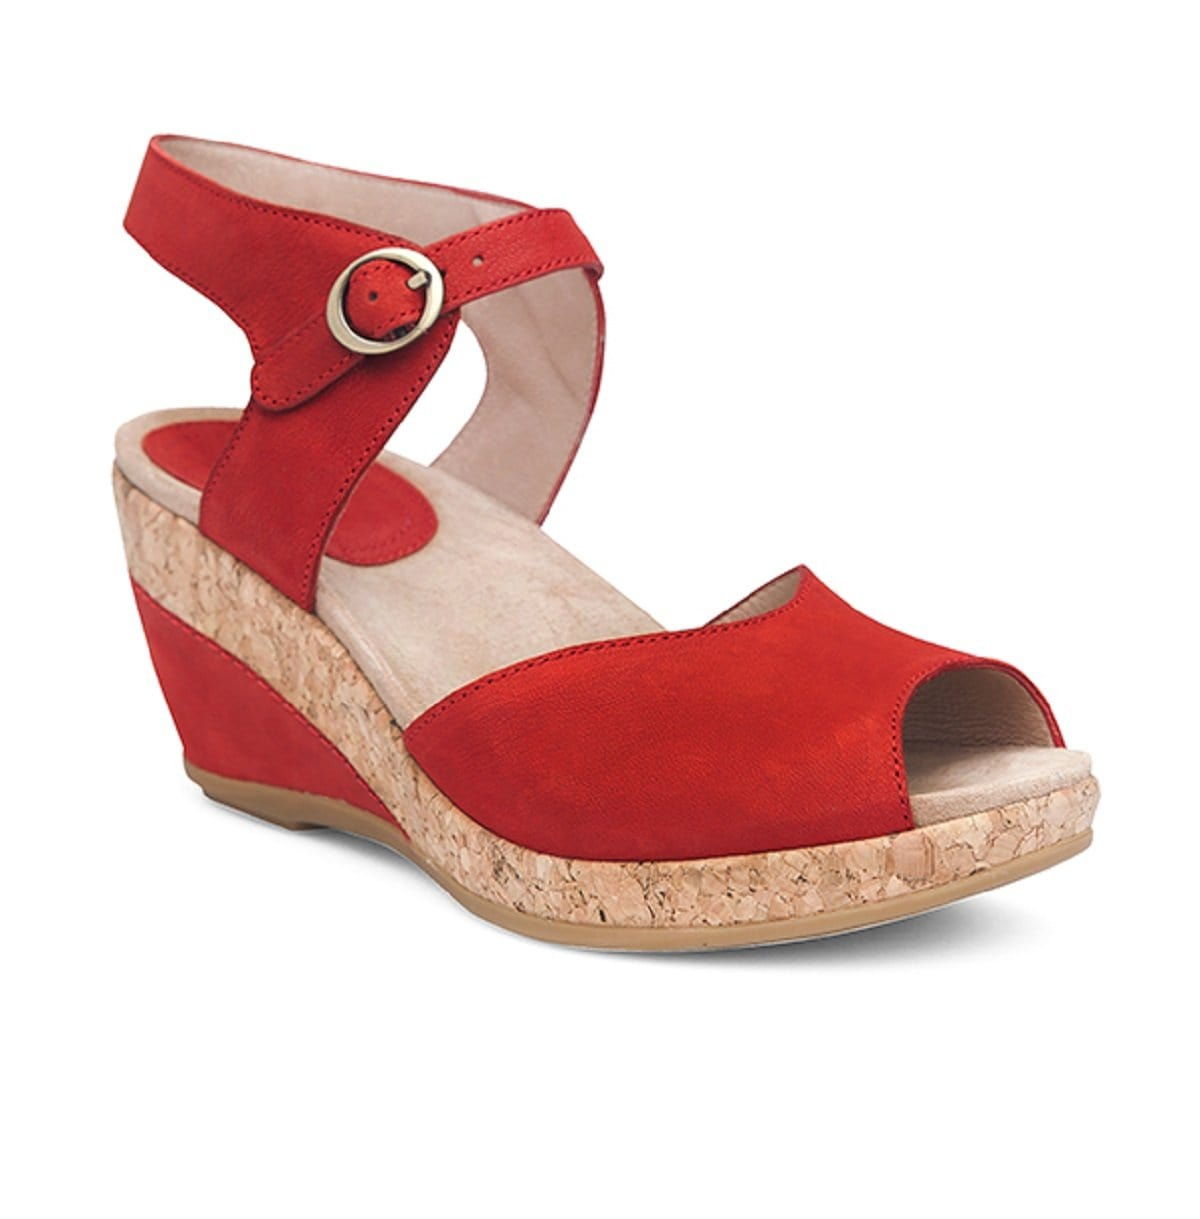 Dansko Charlotte Women's Leather Cork Classic Mary Jane Wedge Shoe